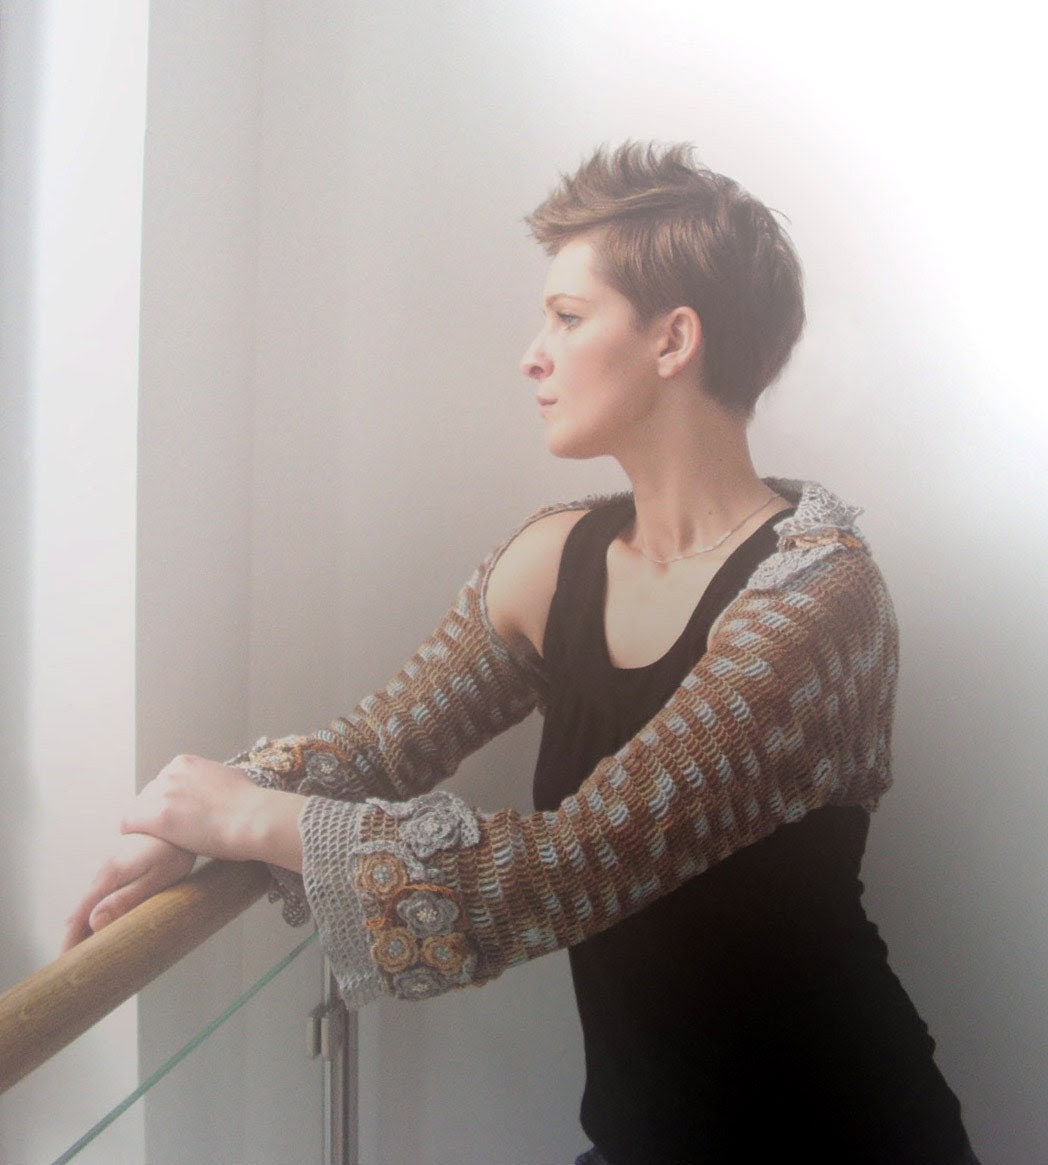 Magical Garden With A Little Sepia - crocheted decorated shrug bolero with 3/4 length sleeves